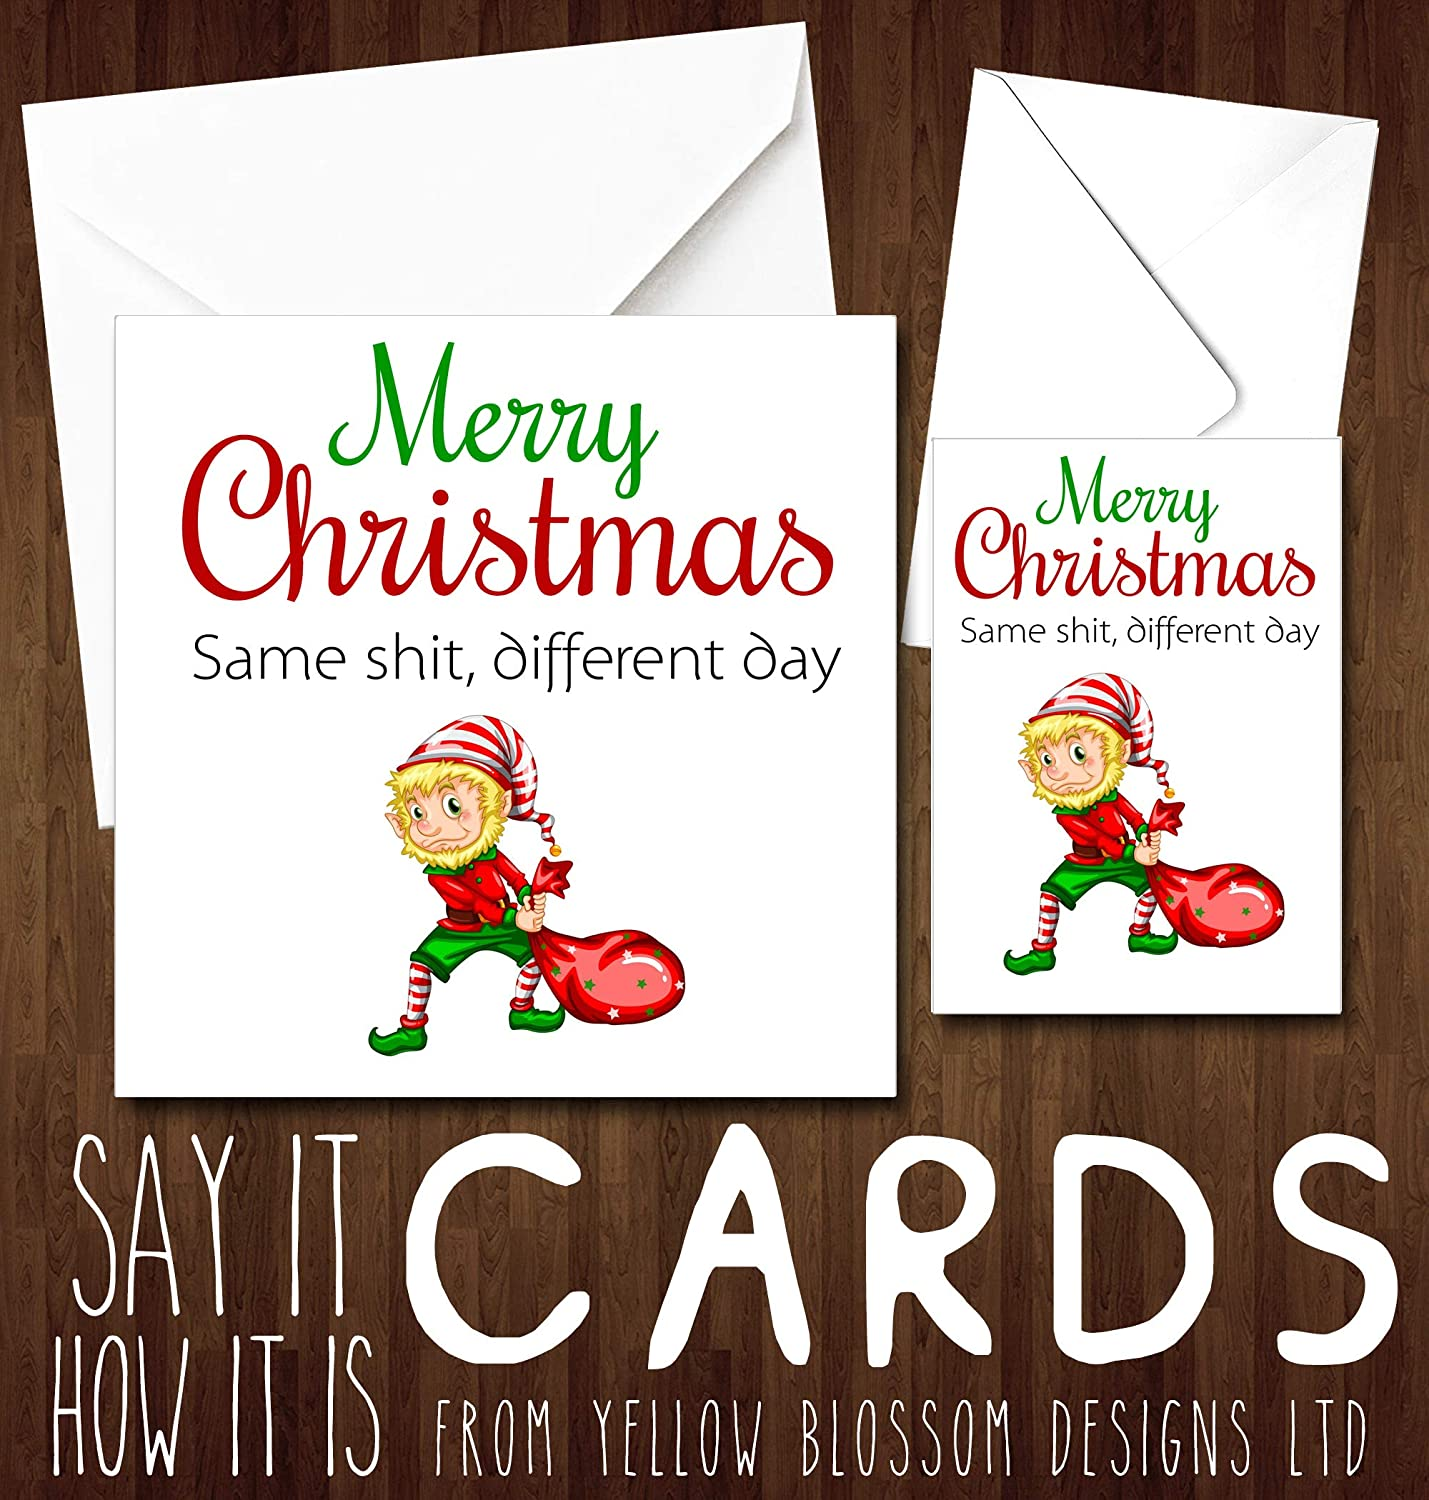 Comical Funny Christmas Greeting Card Merry Christmas Same Shit Different Day Joke Him Her Best Mate Colleague Cousin Wife Husband Girlfriend Boyfriend Aunt Uncle Xmas Sister Brother Mum Dad Friend Fun Comedy Humour Blunt Cheeky Rude Hilarious Joke Gift B